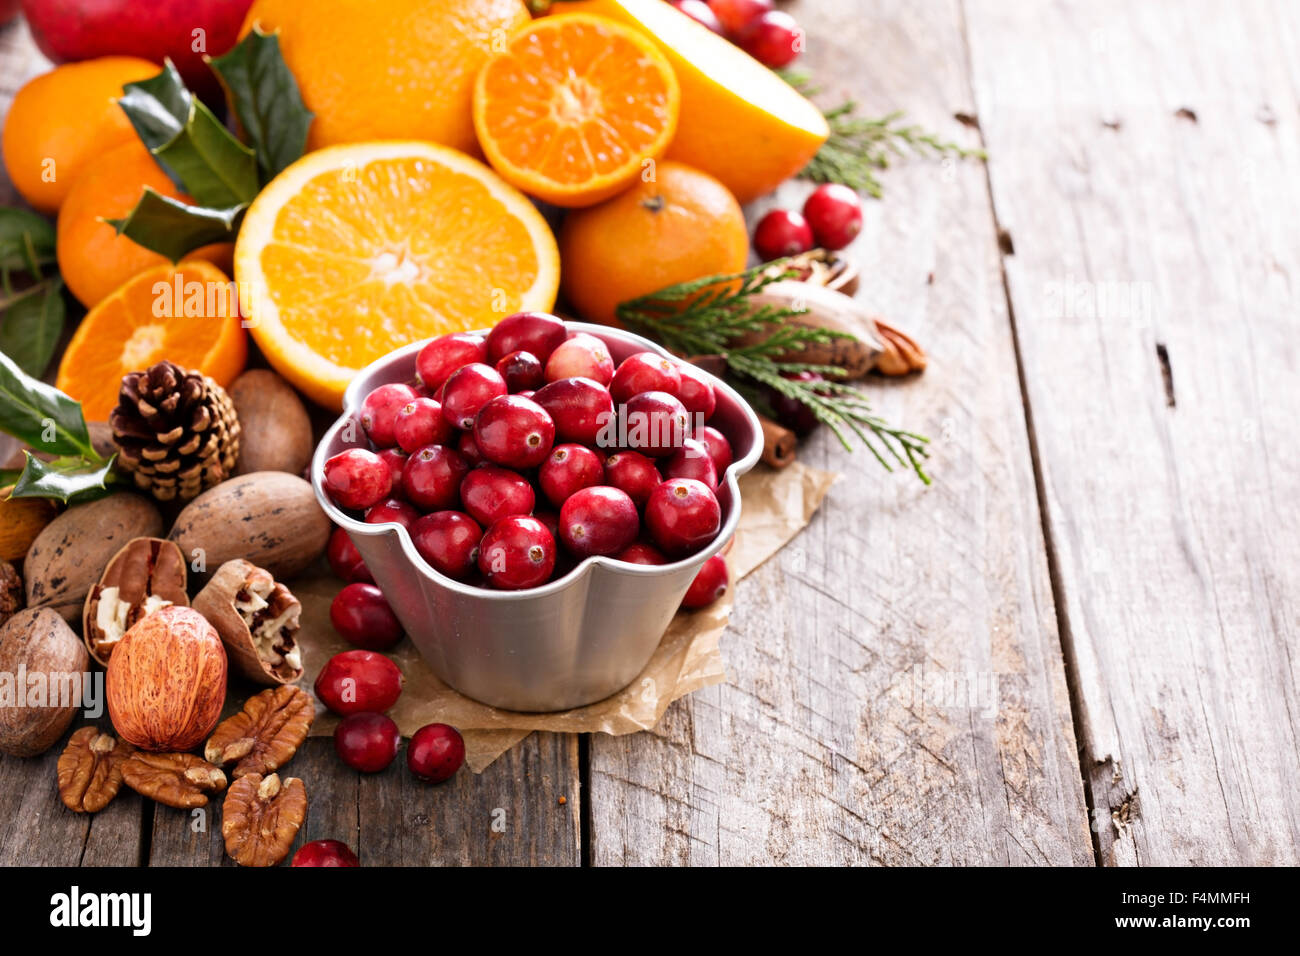 Fall and winter ingredients still life with oranges, cranberry, nuts and spices - Stock Image